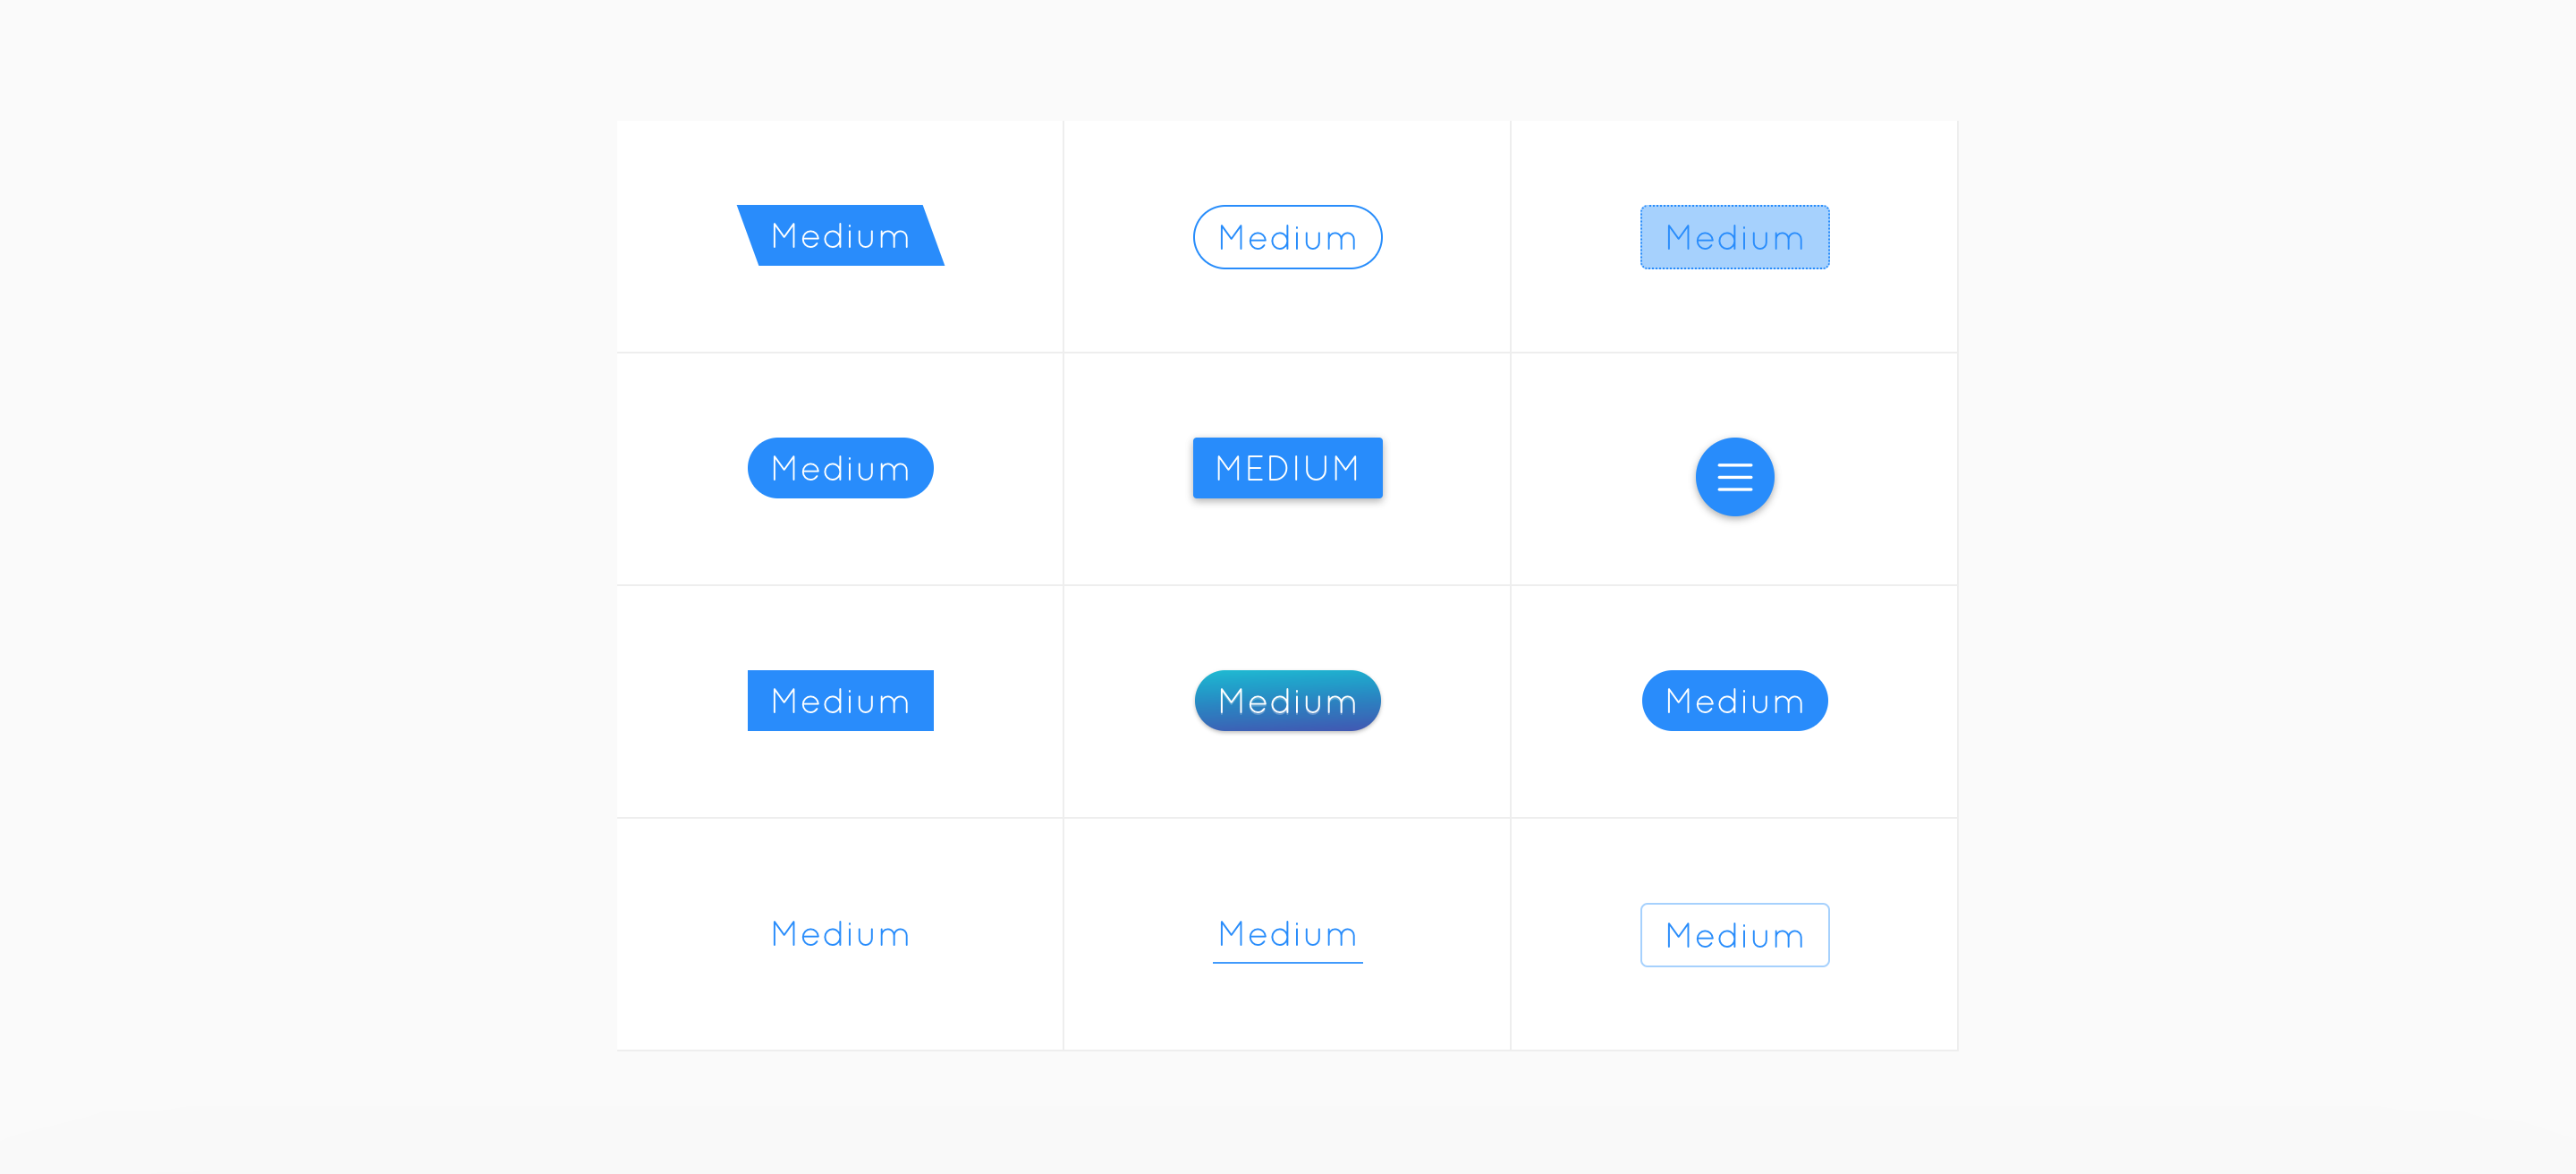 bttn css - Awesome buttons for awesome projects! - Ganapati Bhat